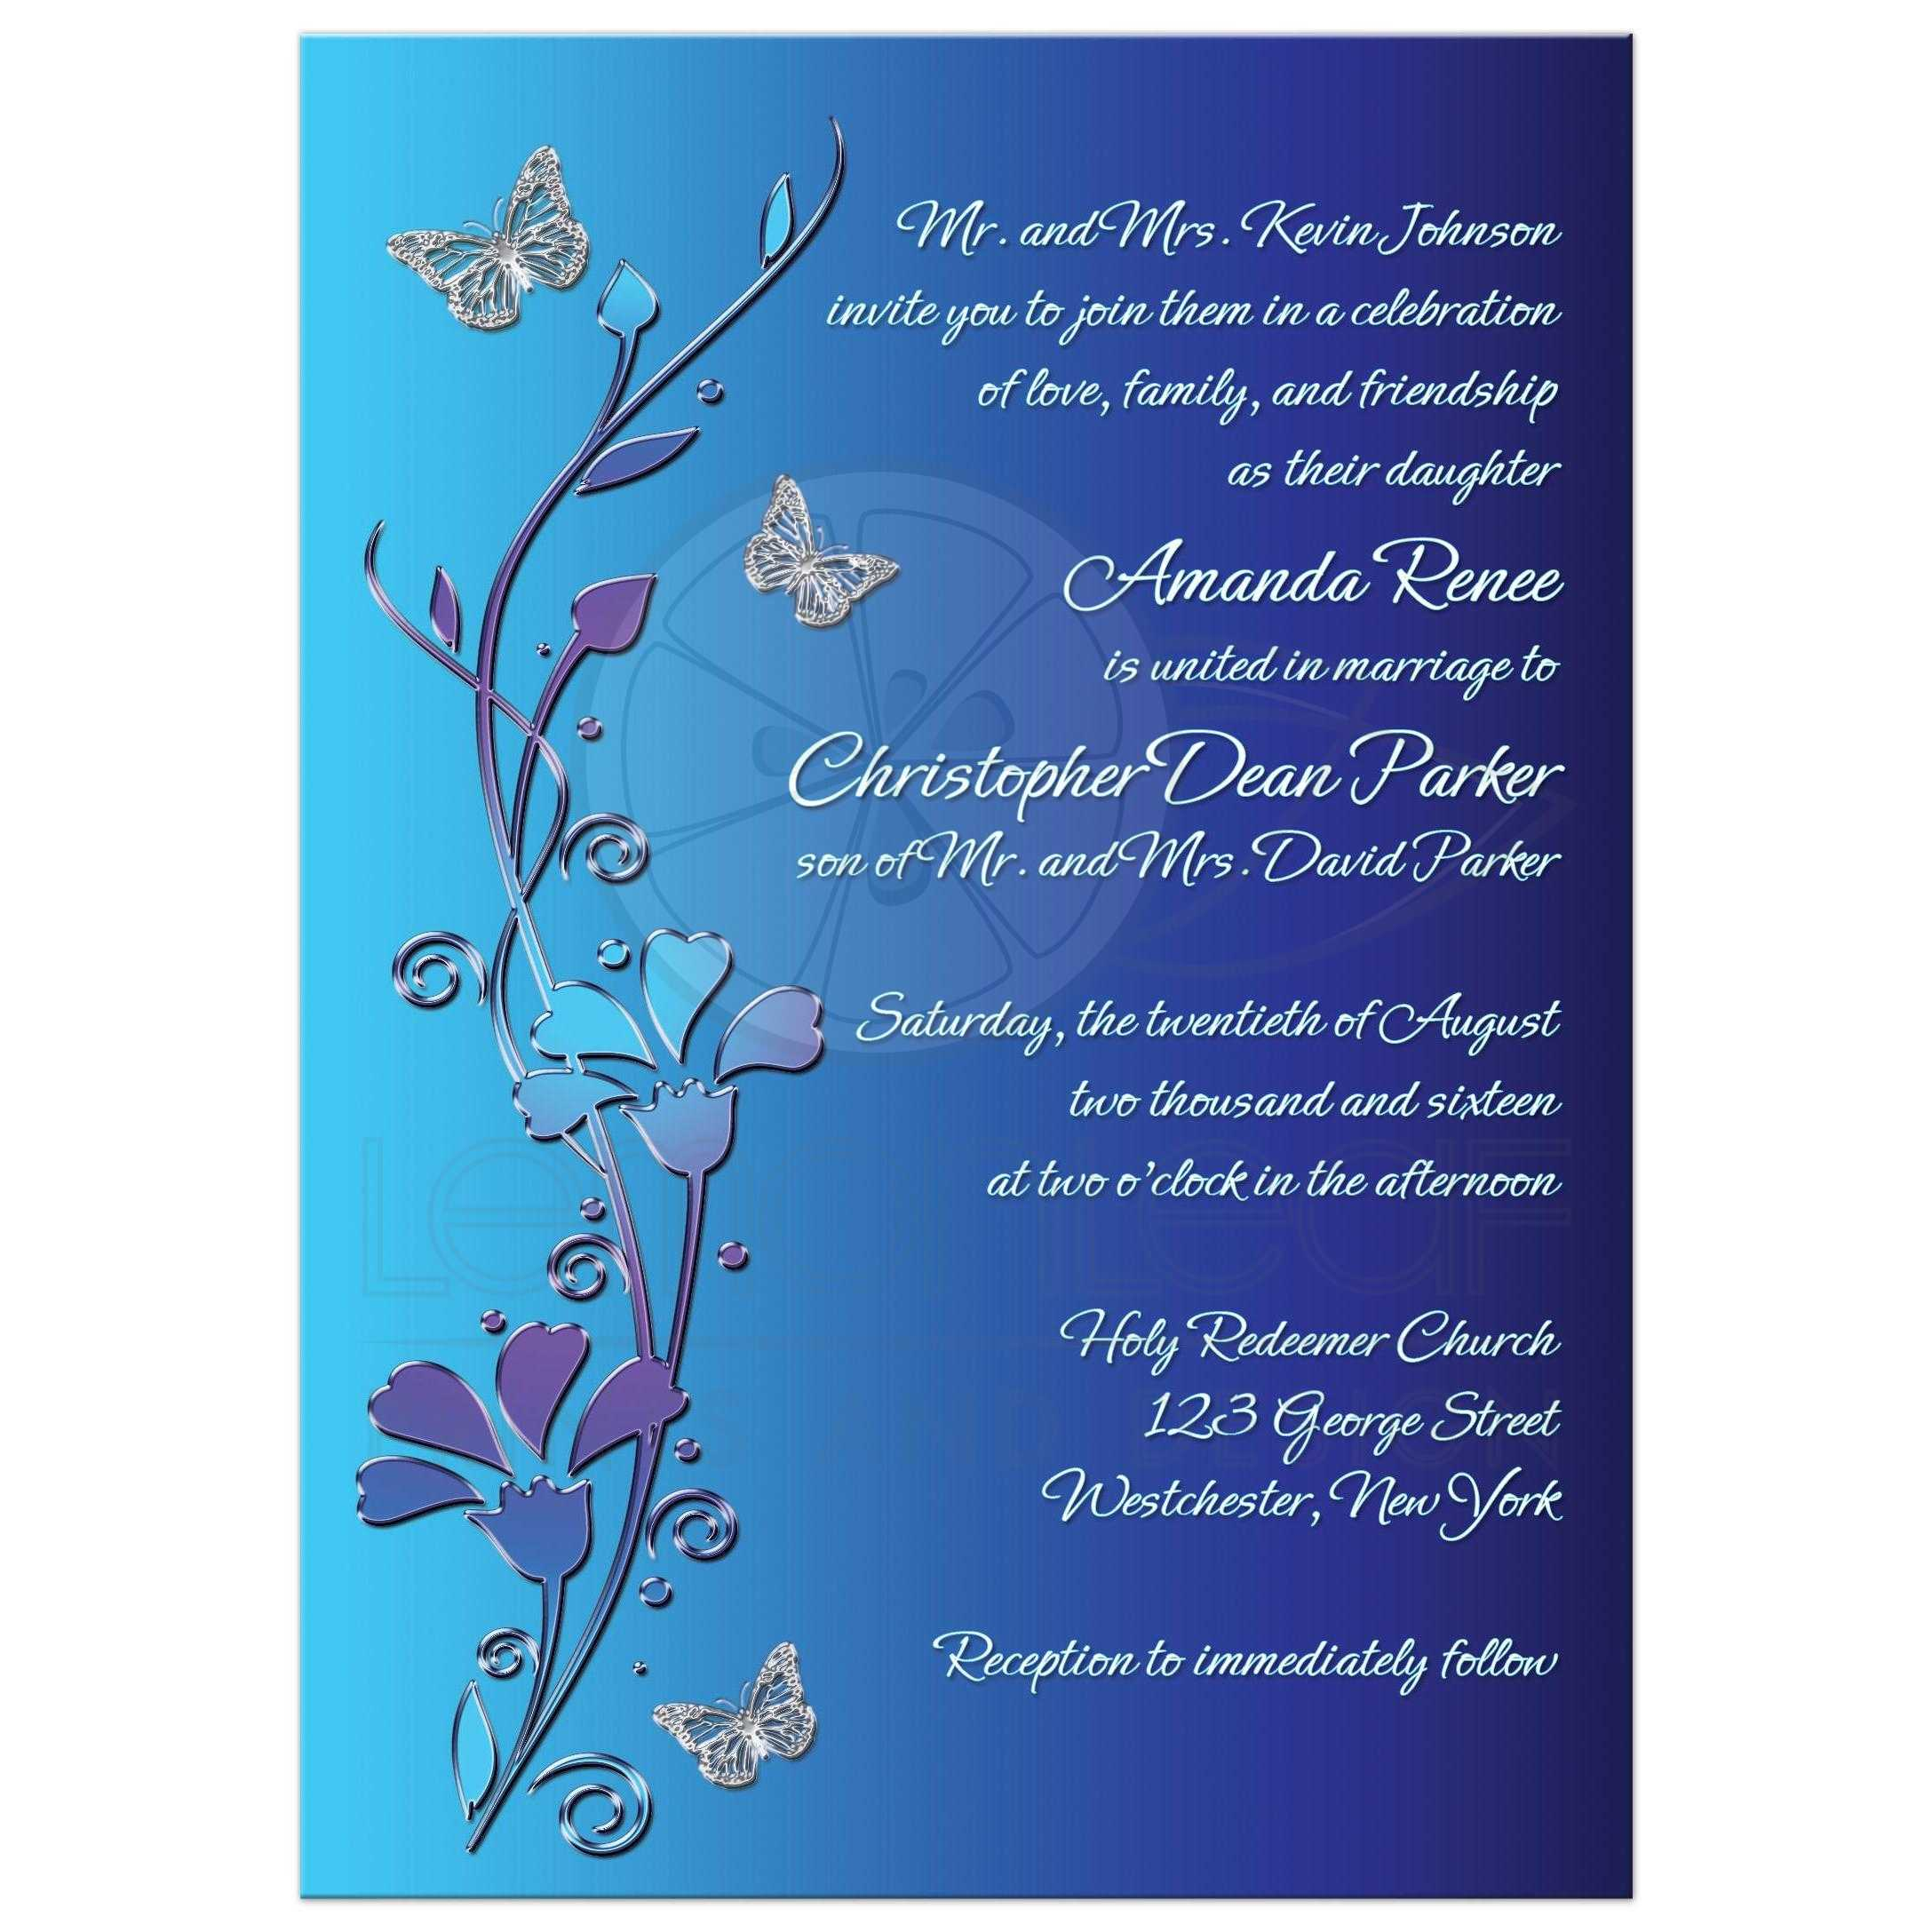 Wedding Invitation | Royal Blue, Turquoise, Mauve Flowers | Silver ...